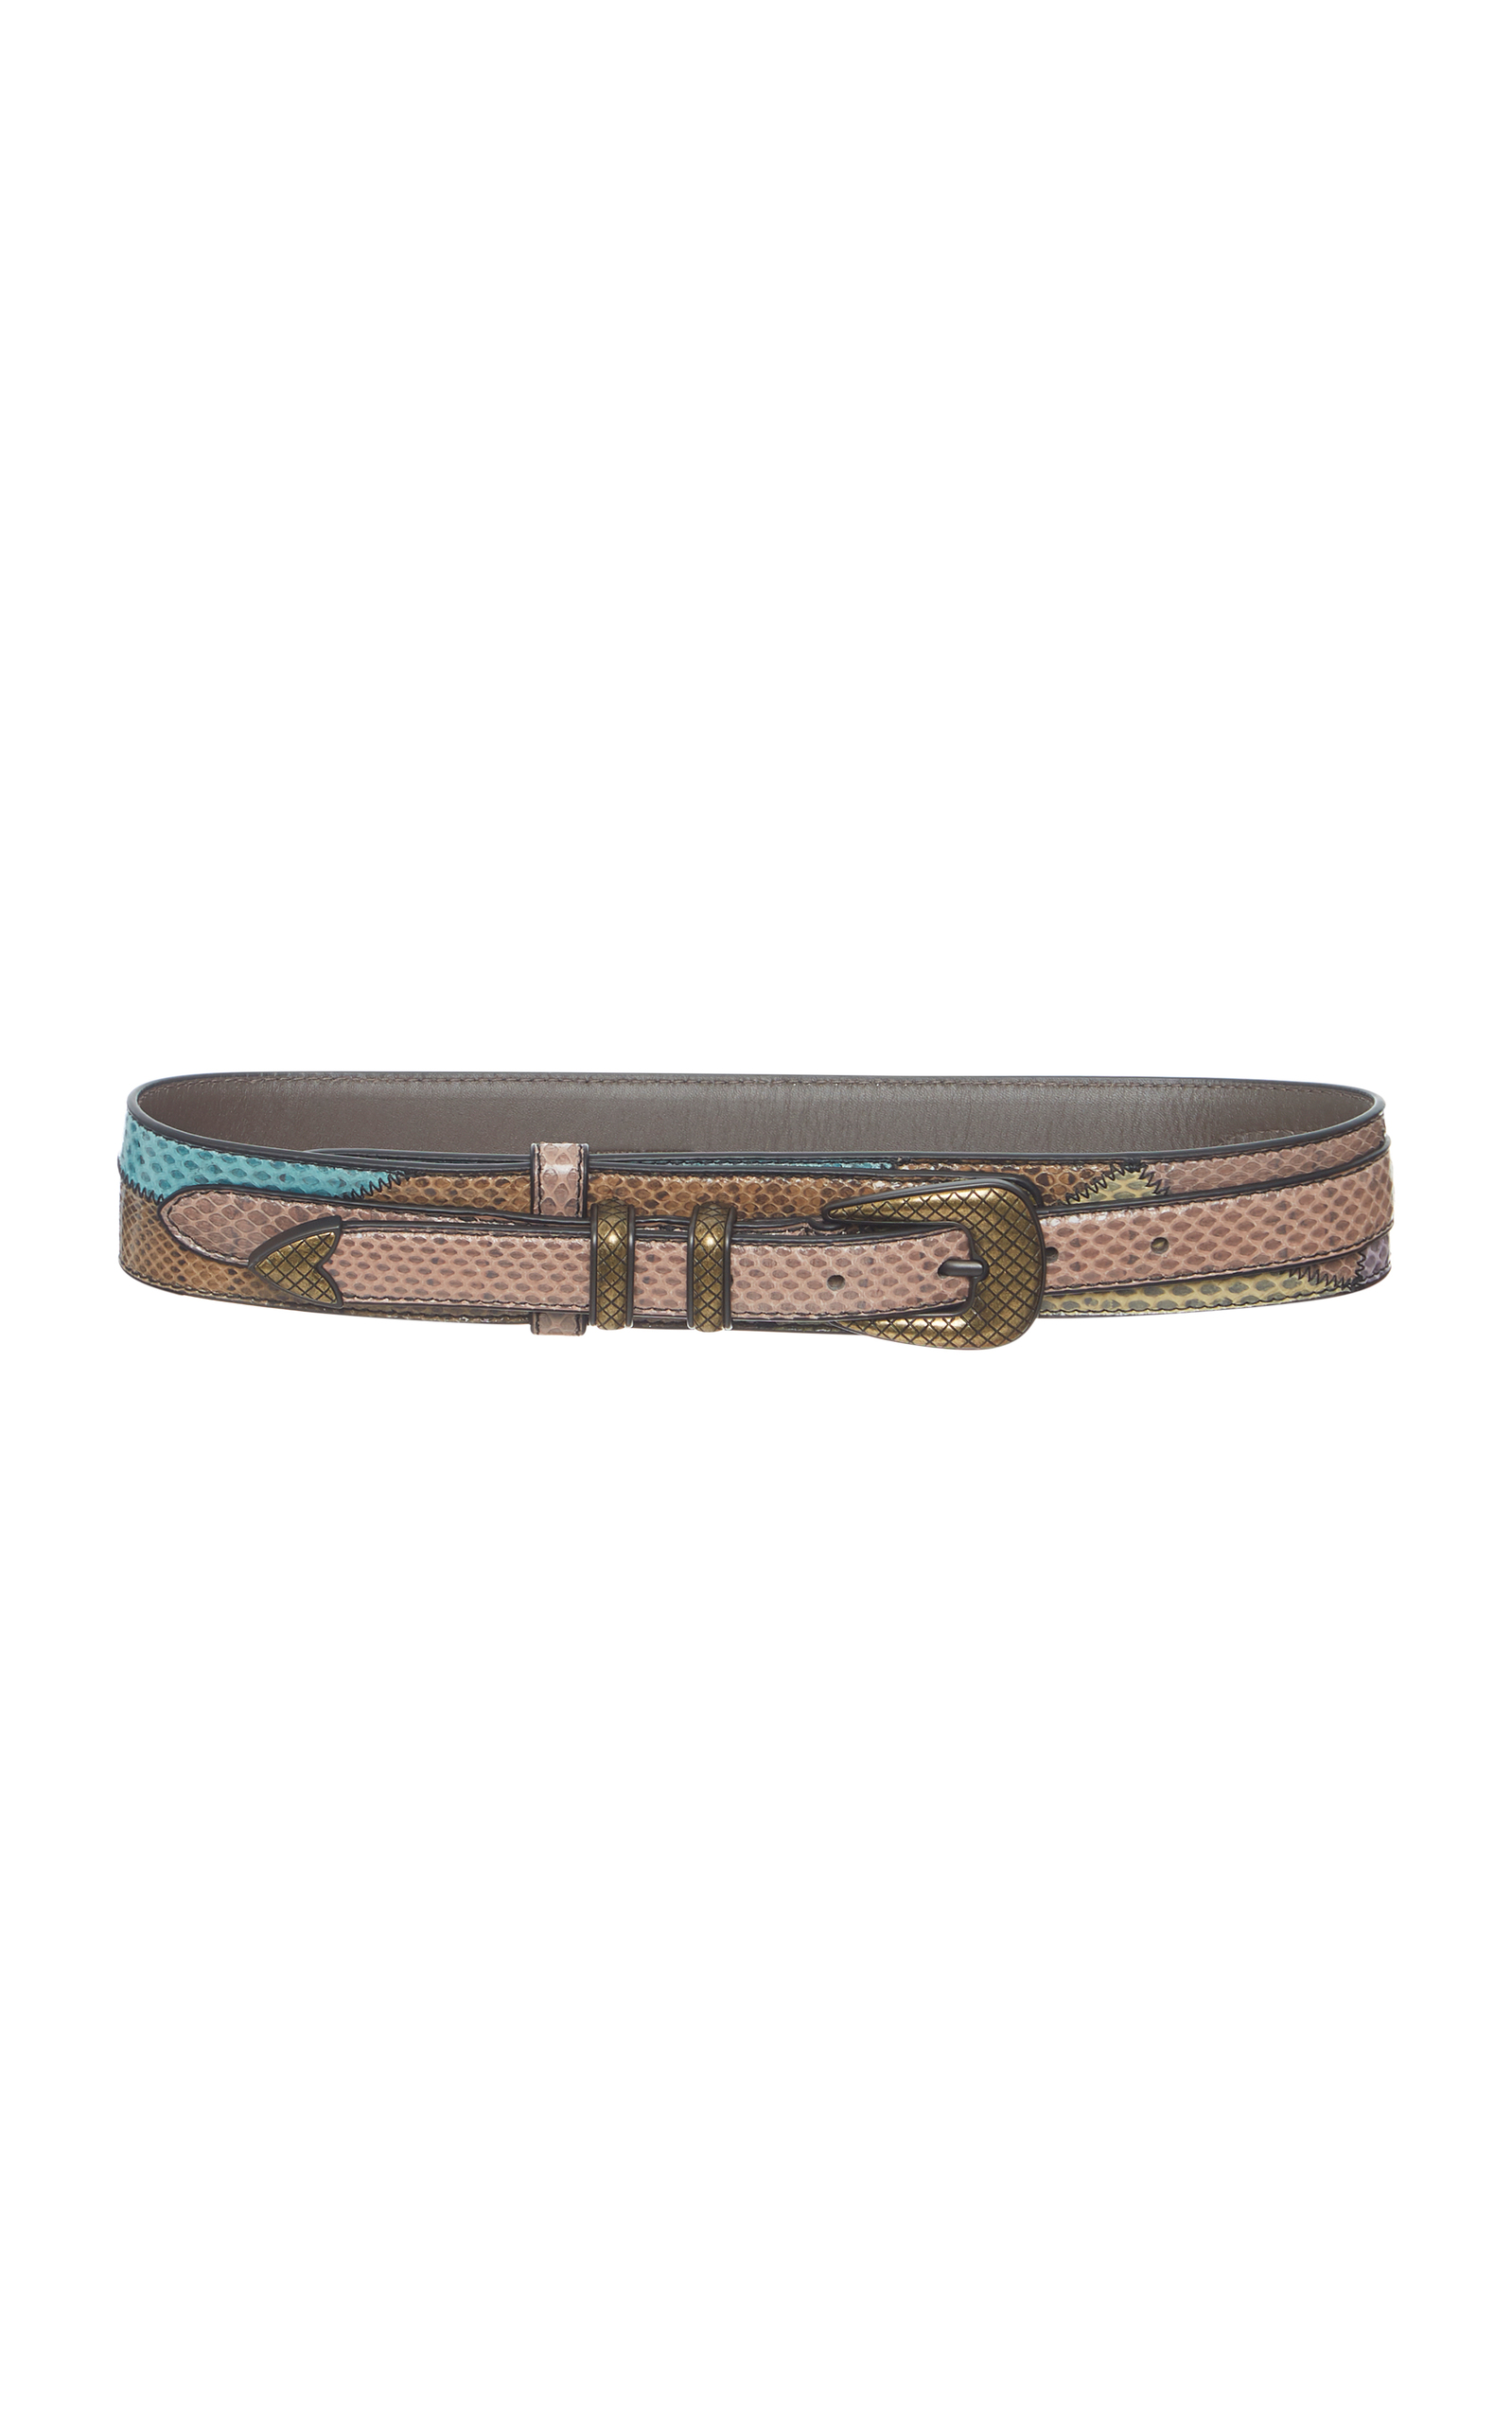 THE PATCHWORK BELT